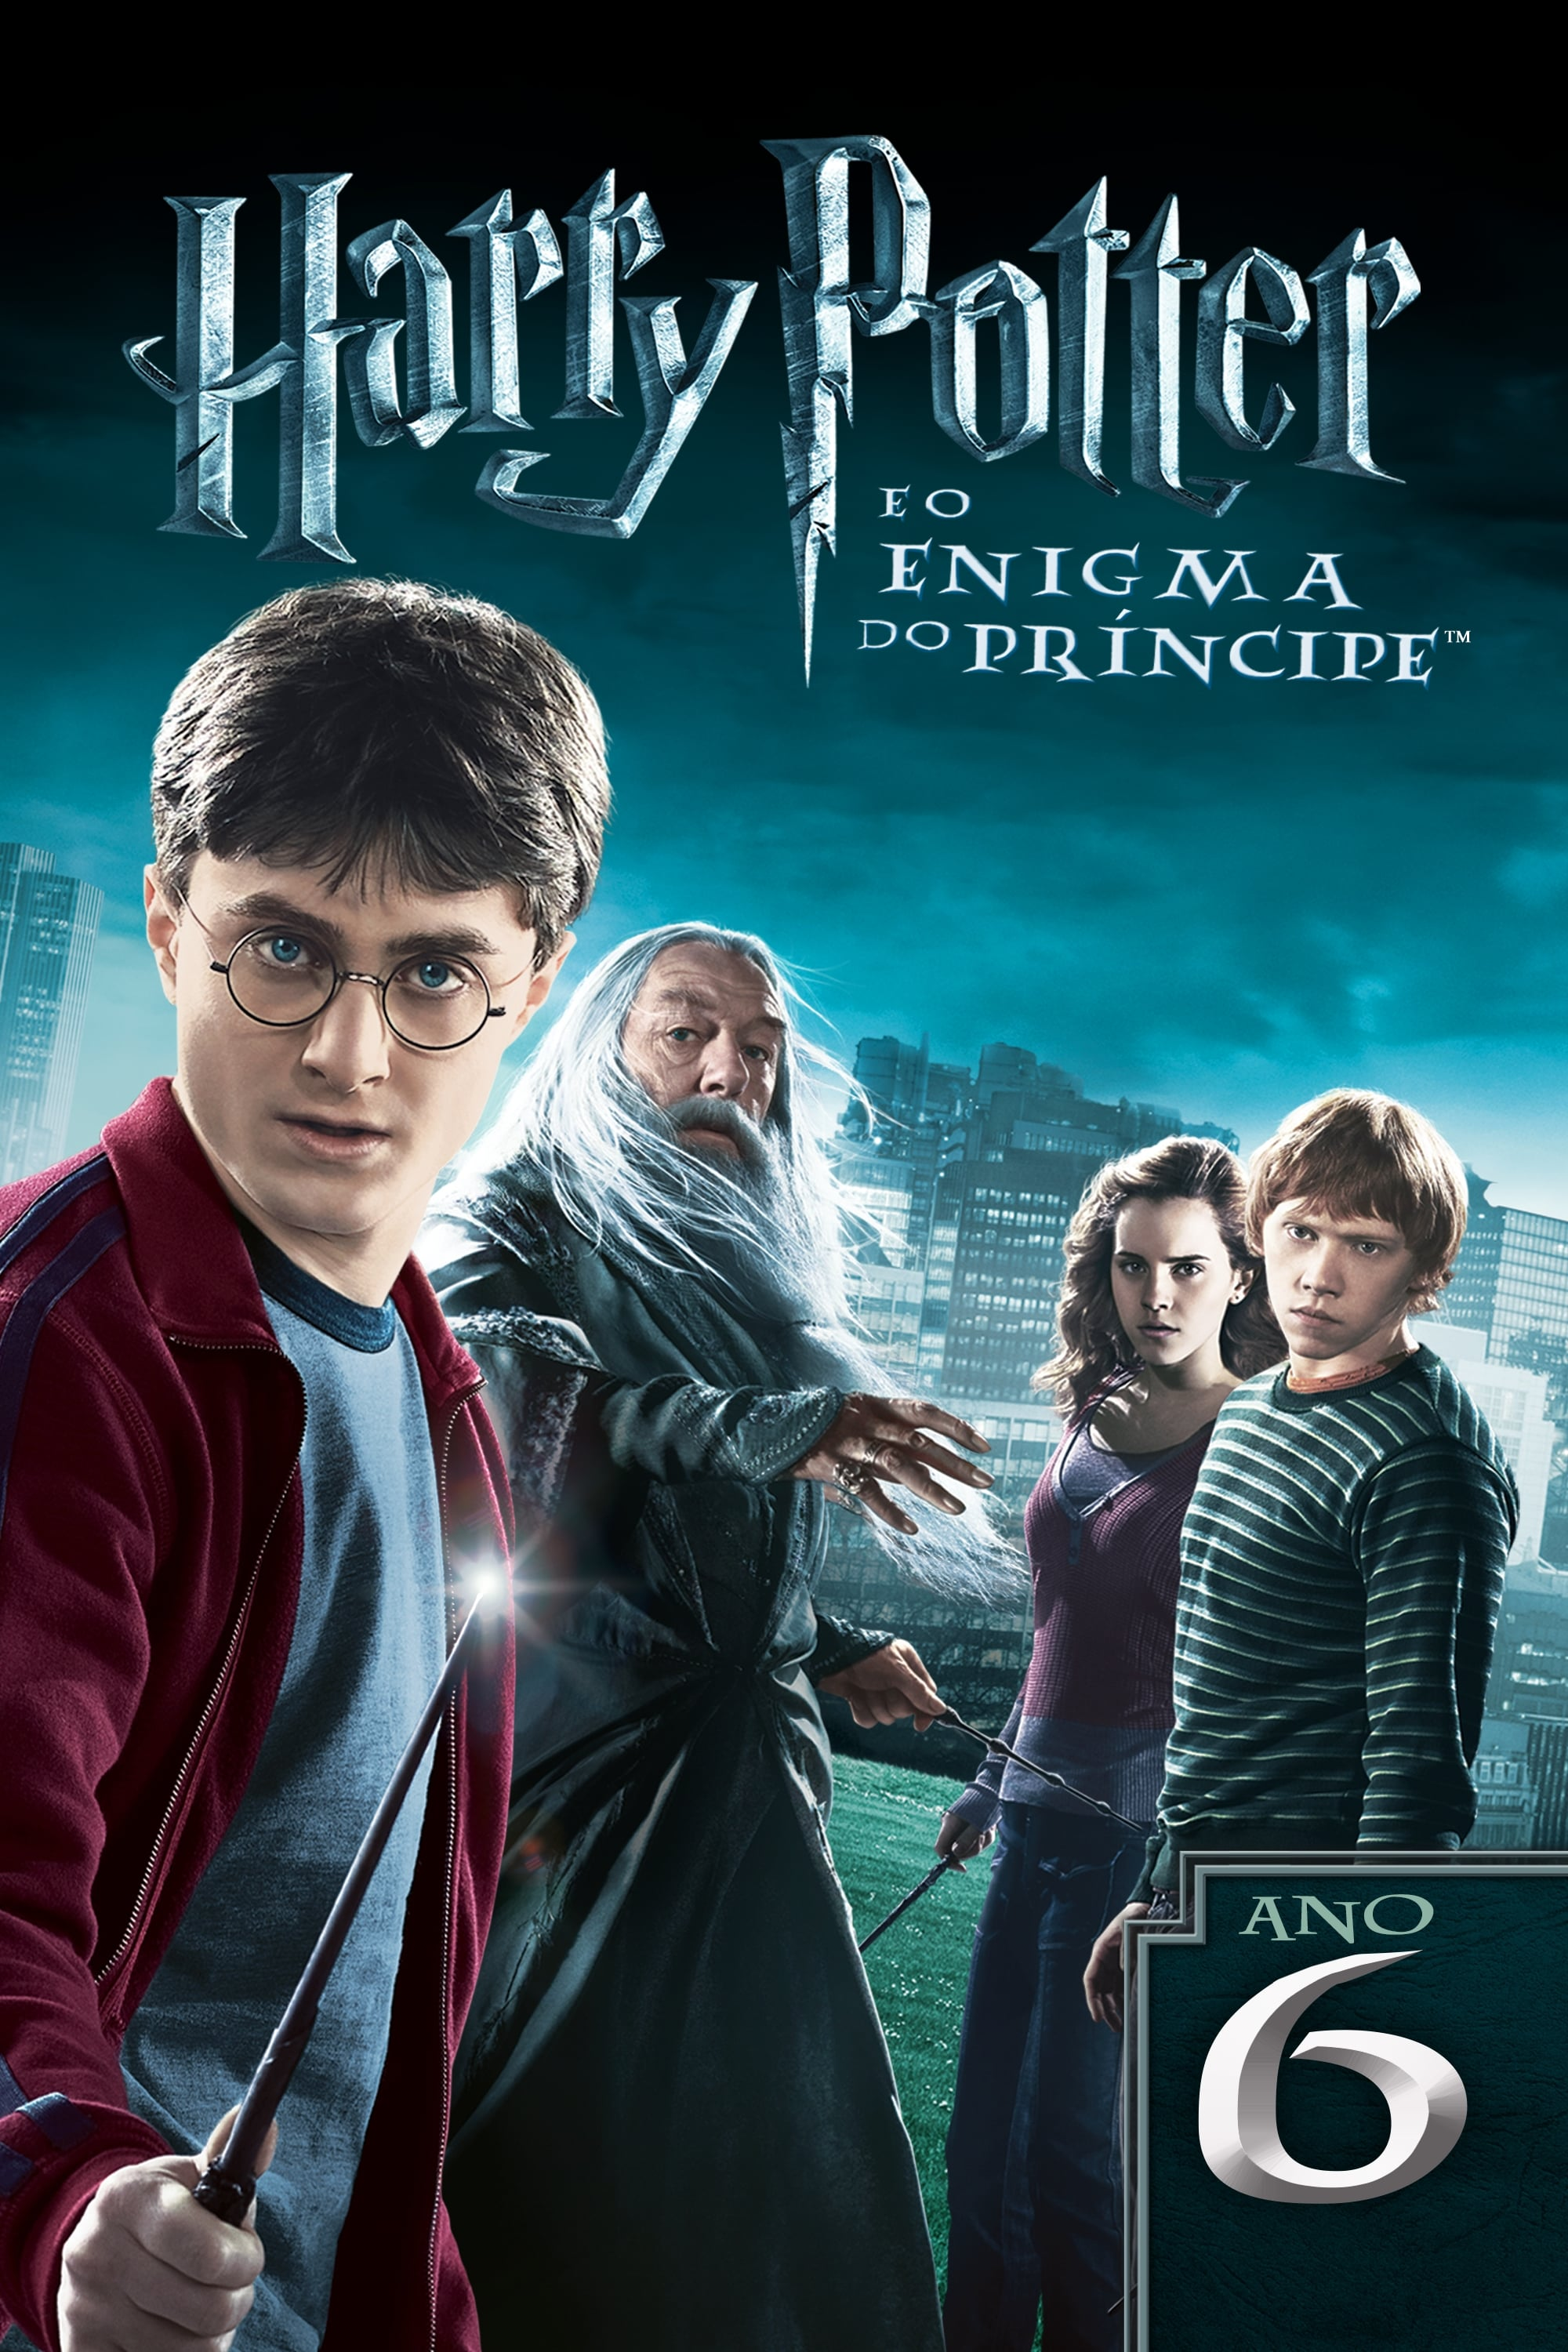 Harry Potter 6 e o Enigma do Príncipe Dublado